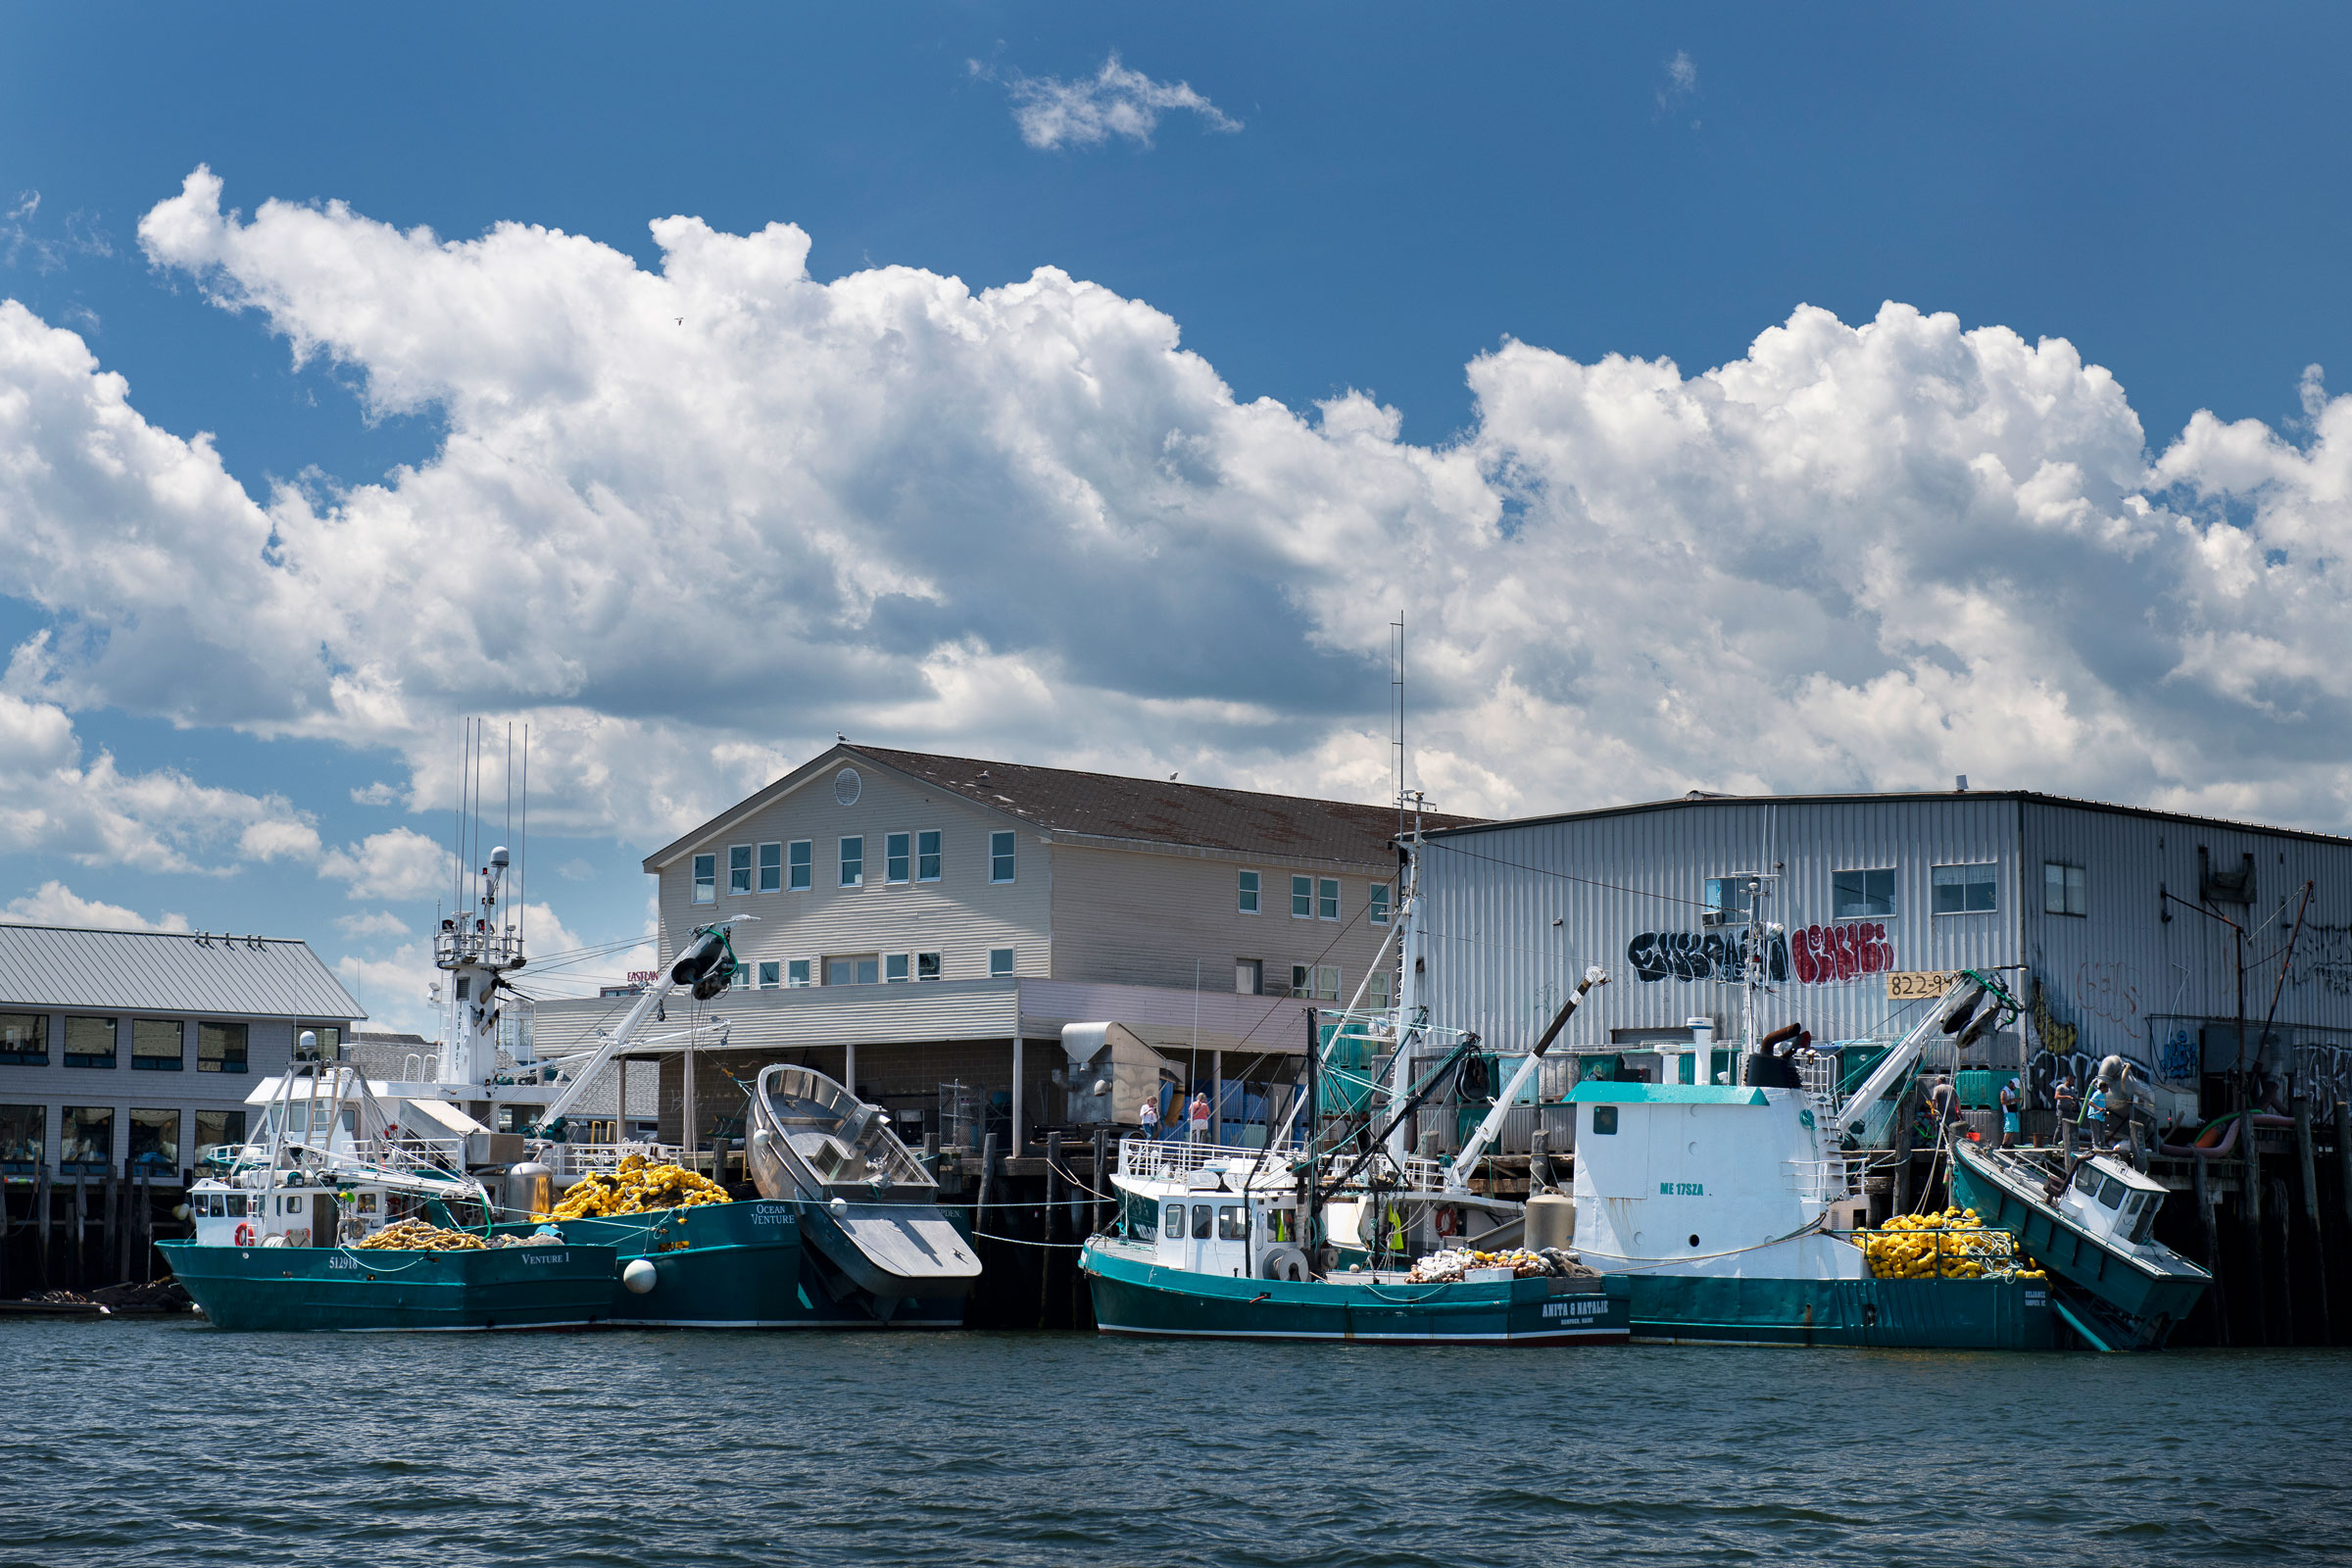 Purse seiner boats, used to catch herring, dock in Portland, Maine. Chris Linder